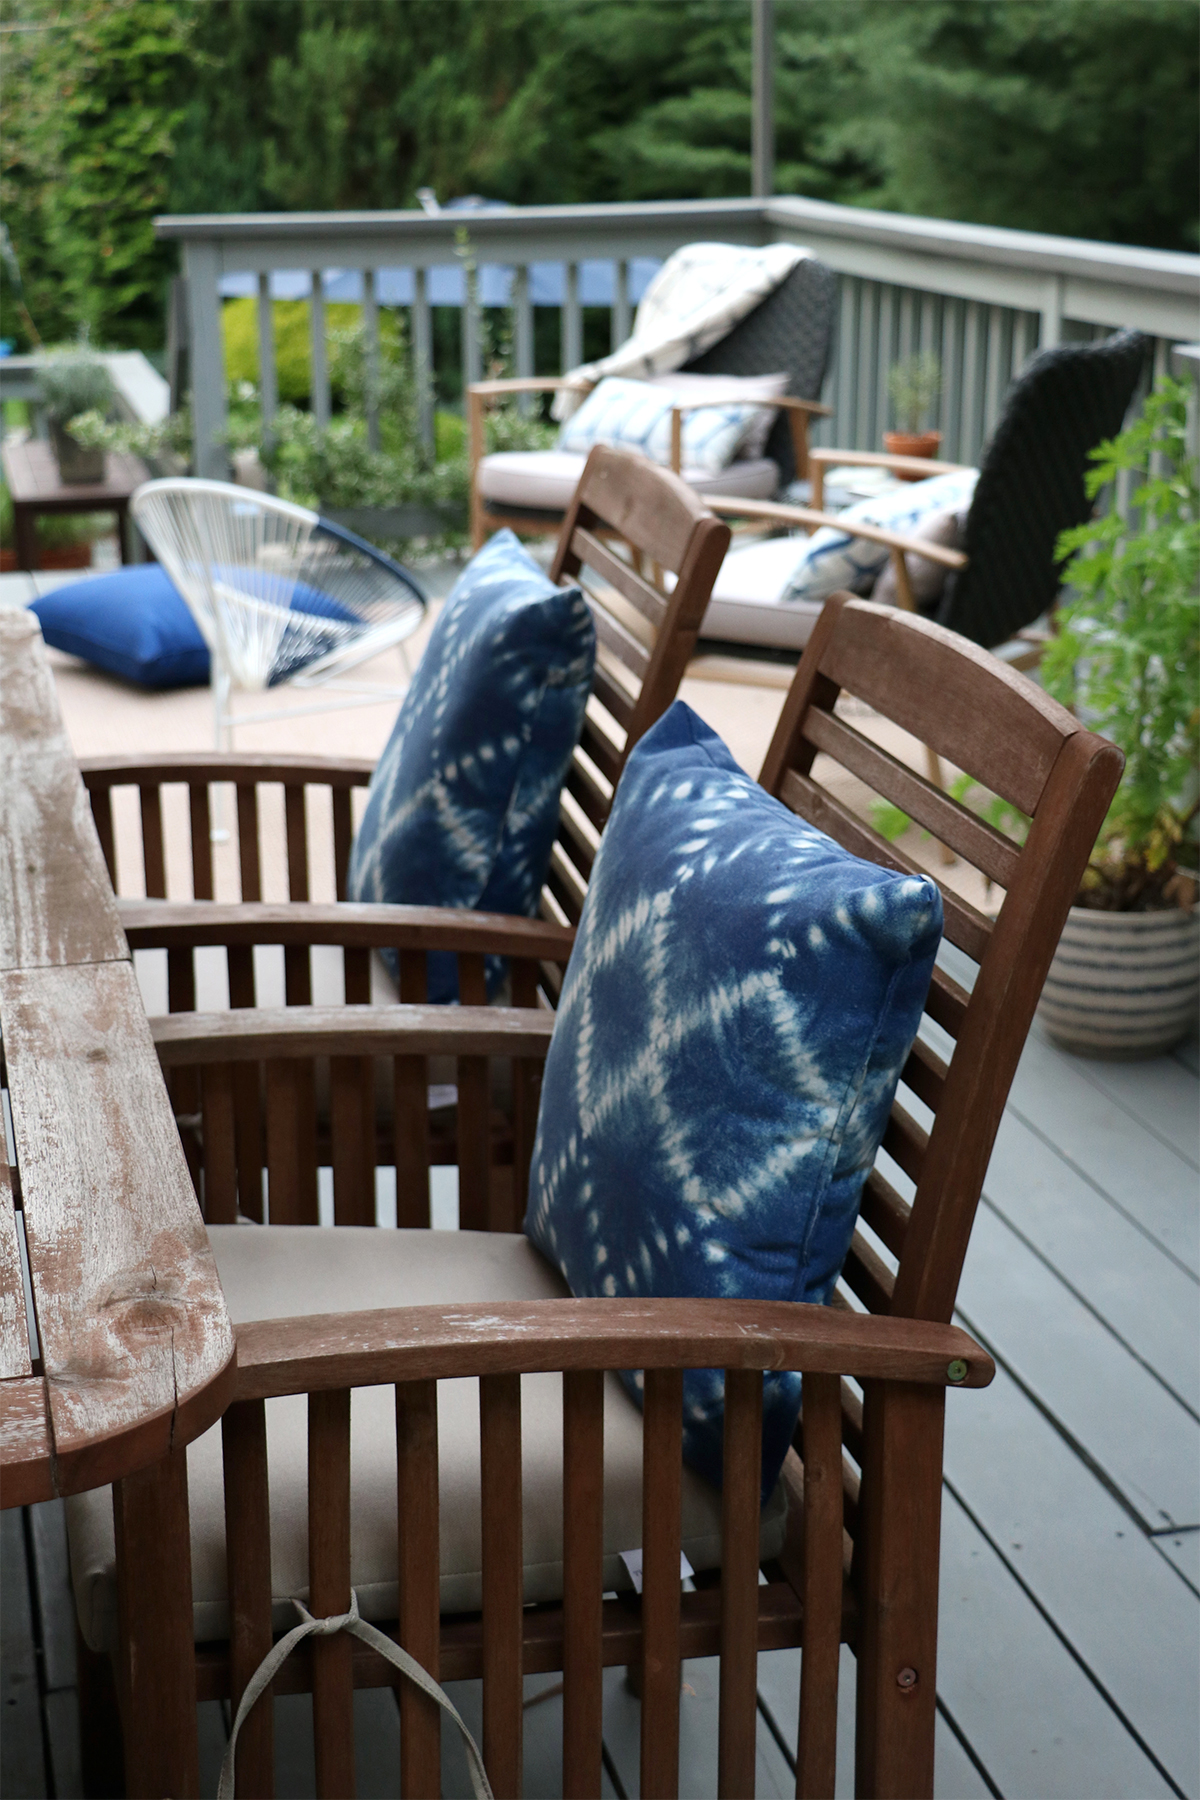 our back deck/patio reveal + tips for decorating an inviting outdoor space | root + dwell